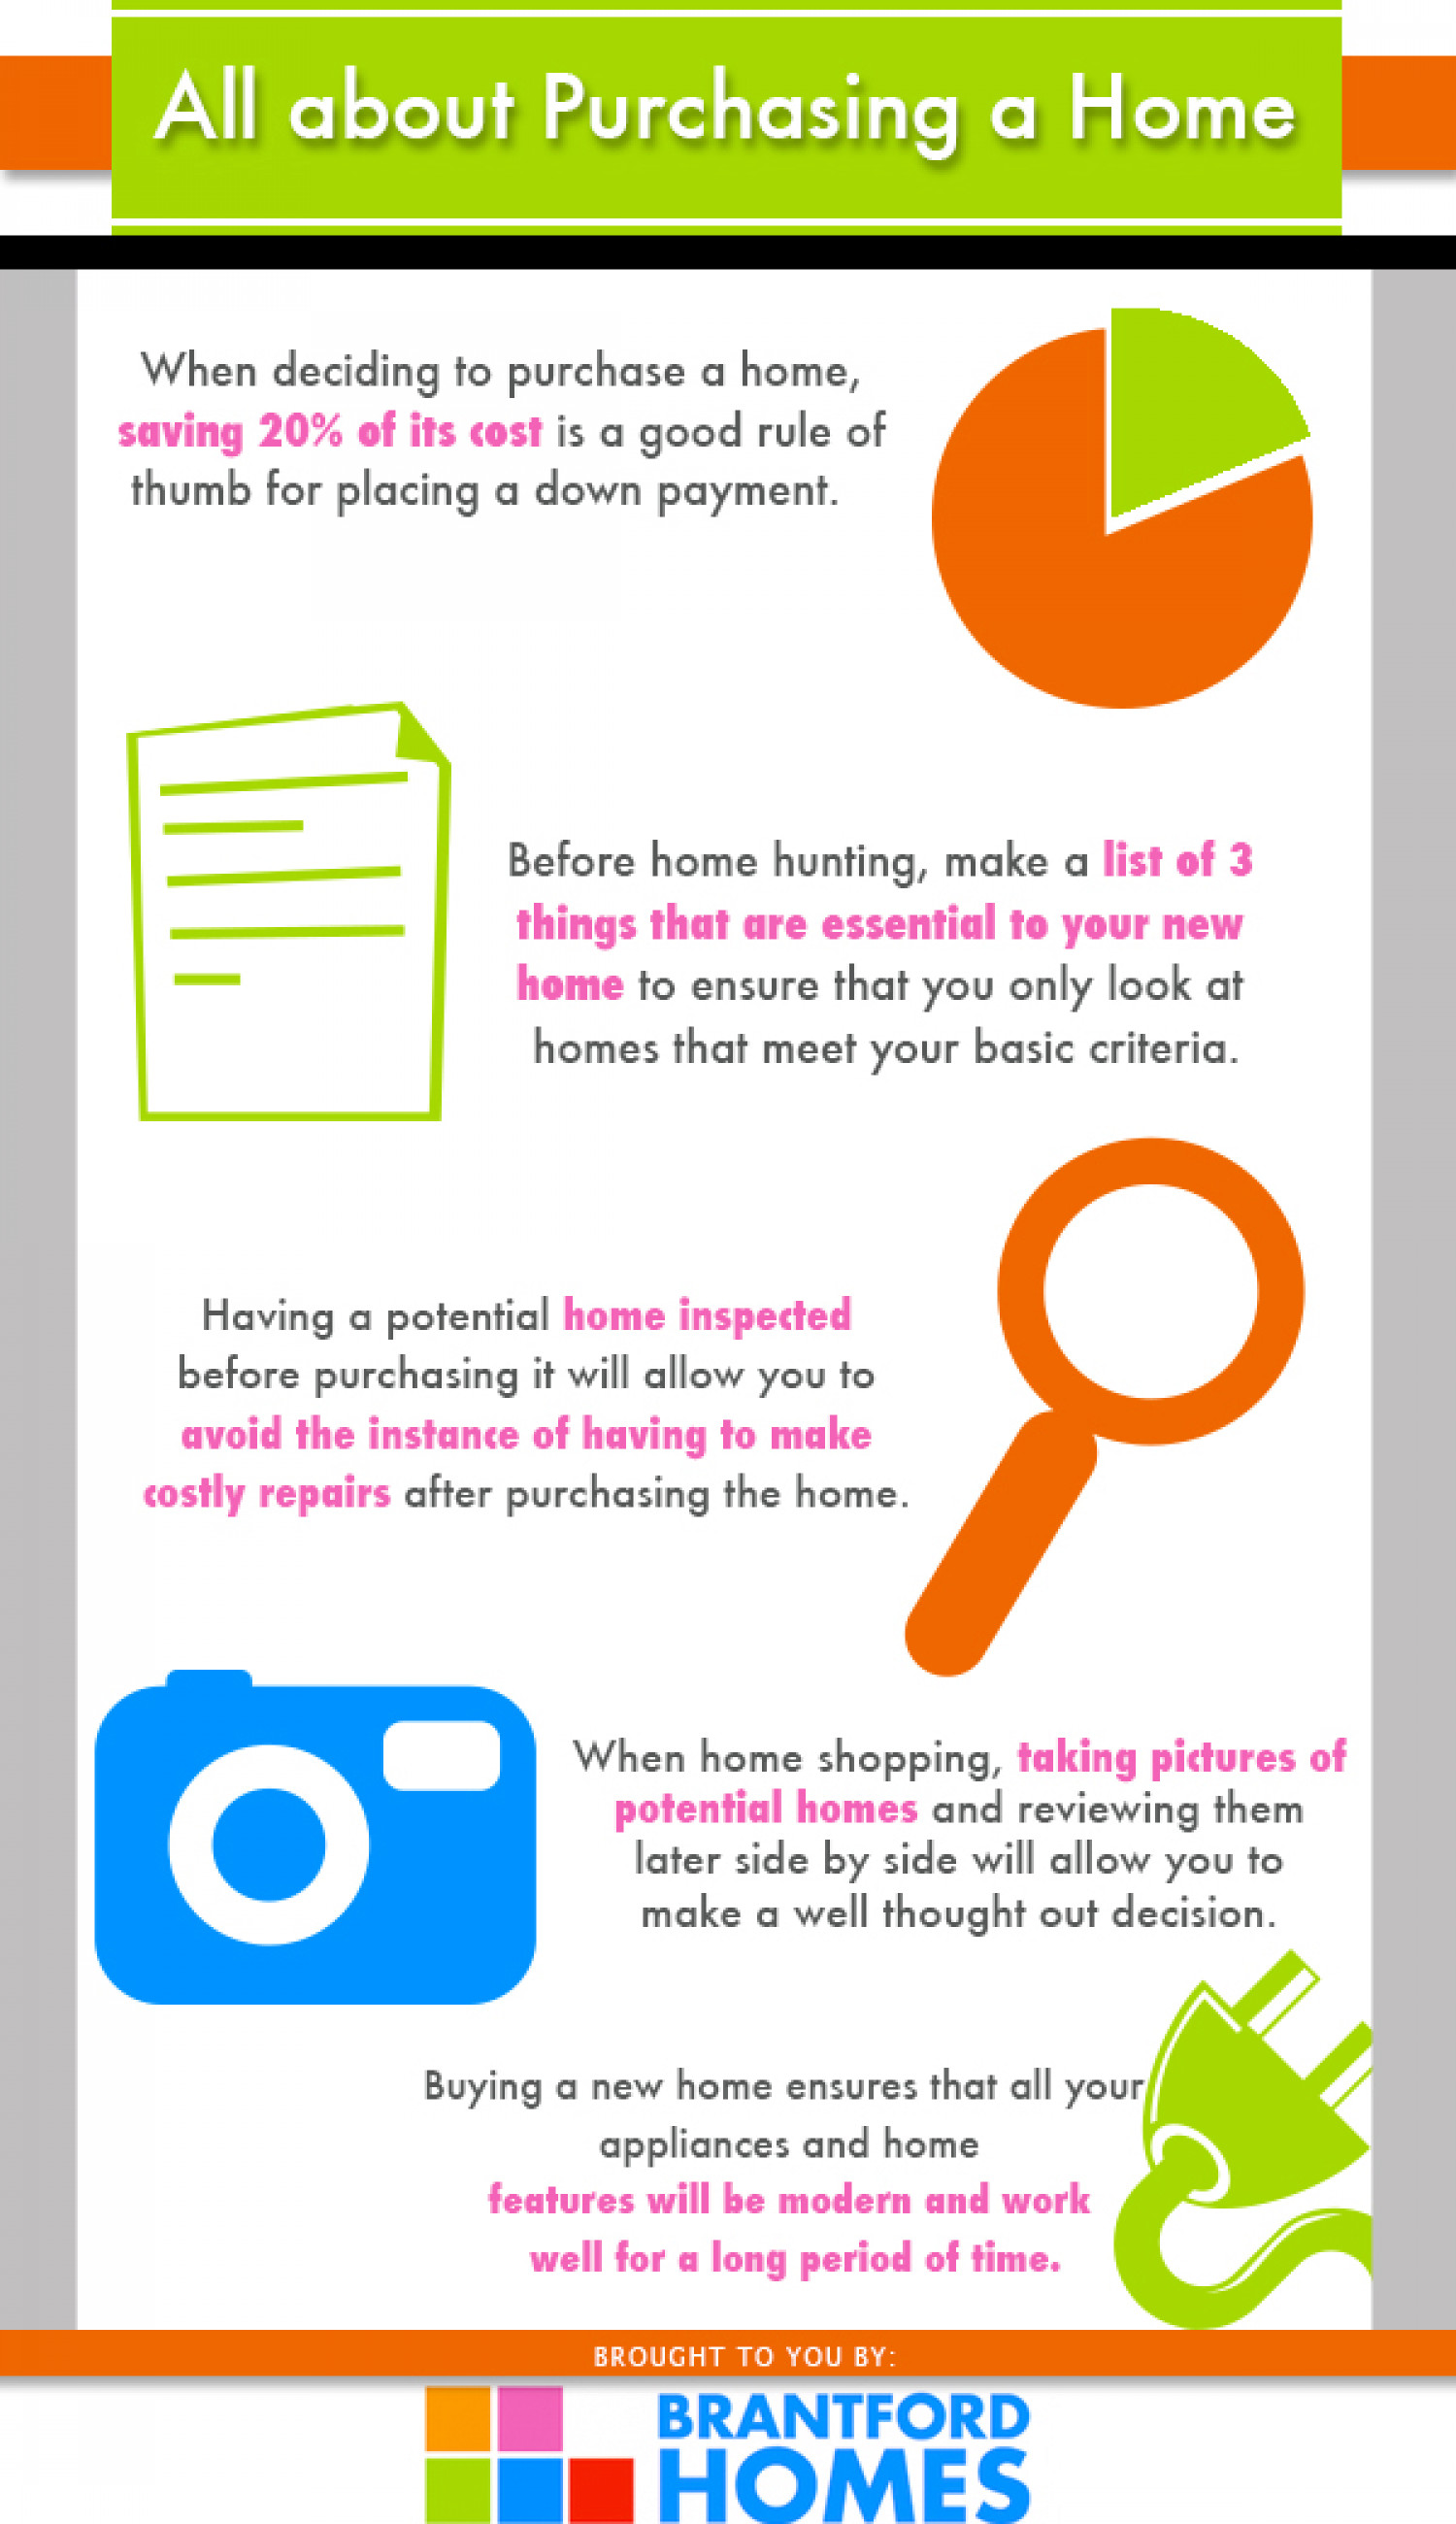 All about Purchasing a Home Infographic